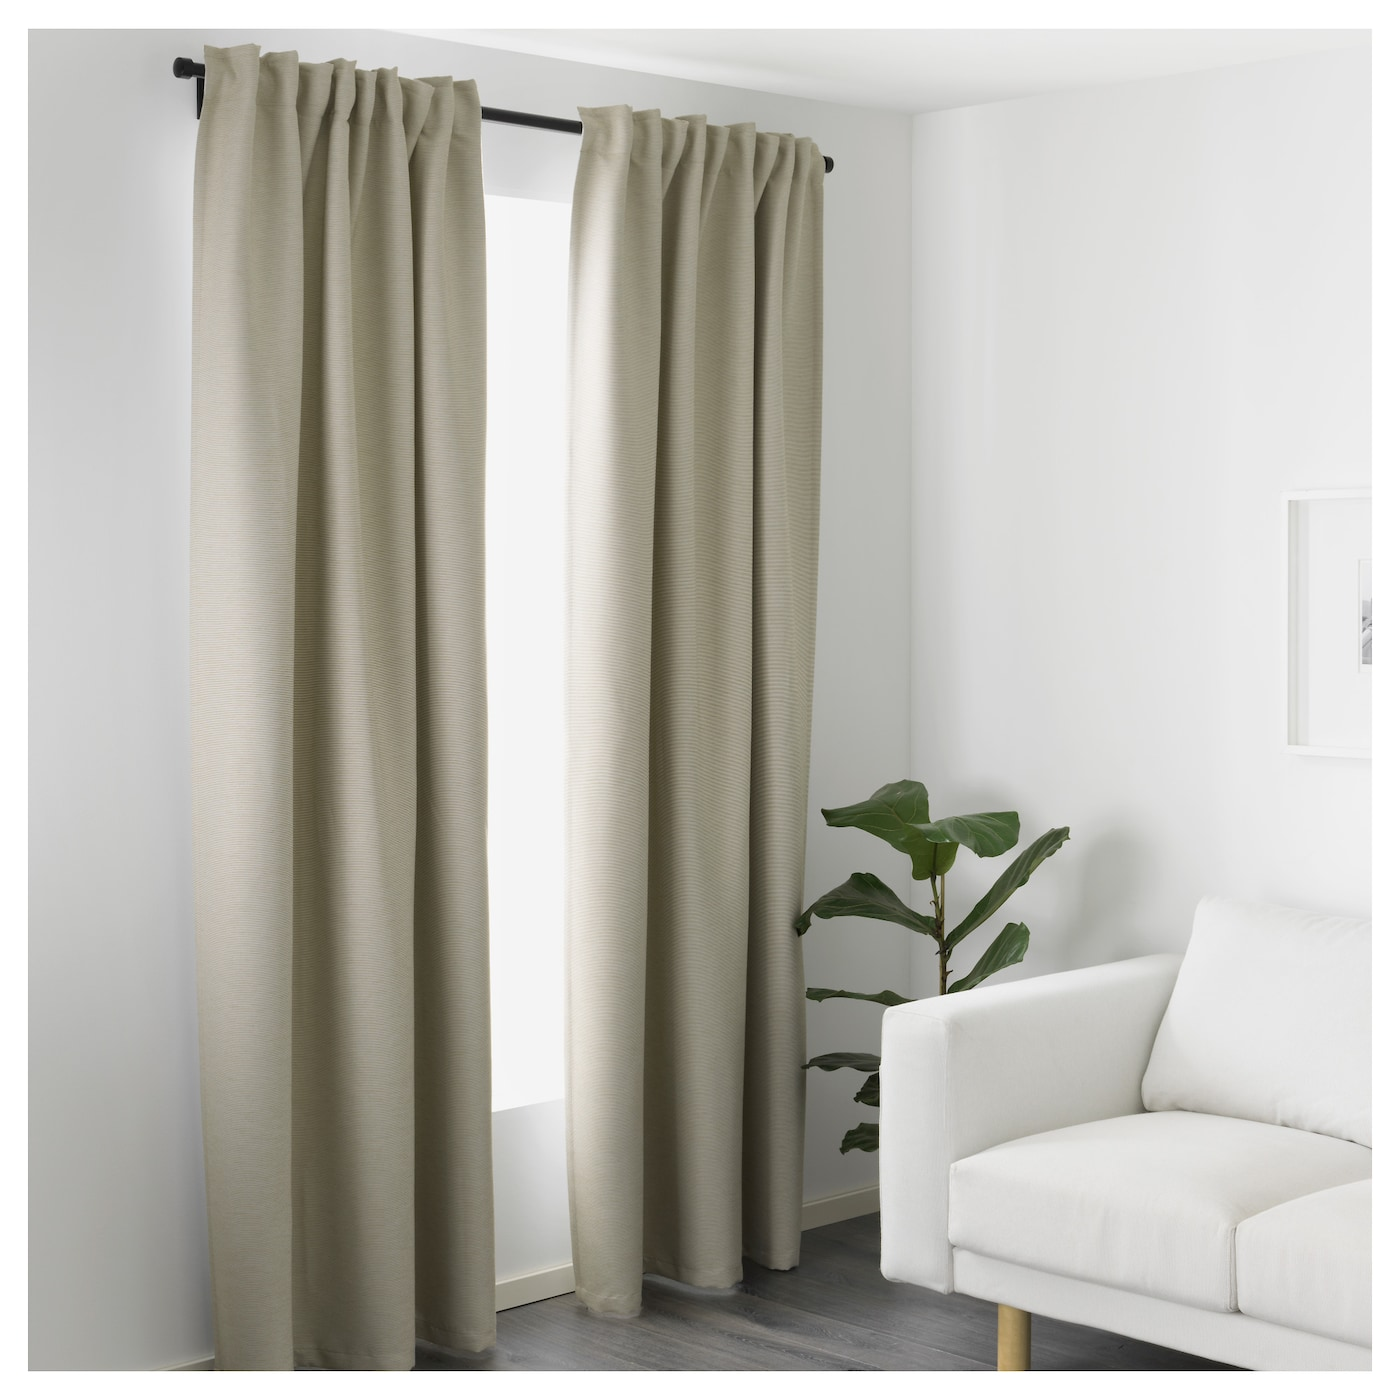 vilborg curtains 1 pair beige 145x250 cm ikea